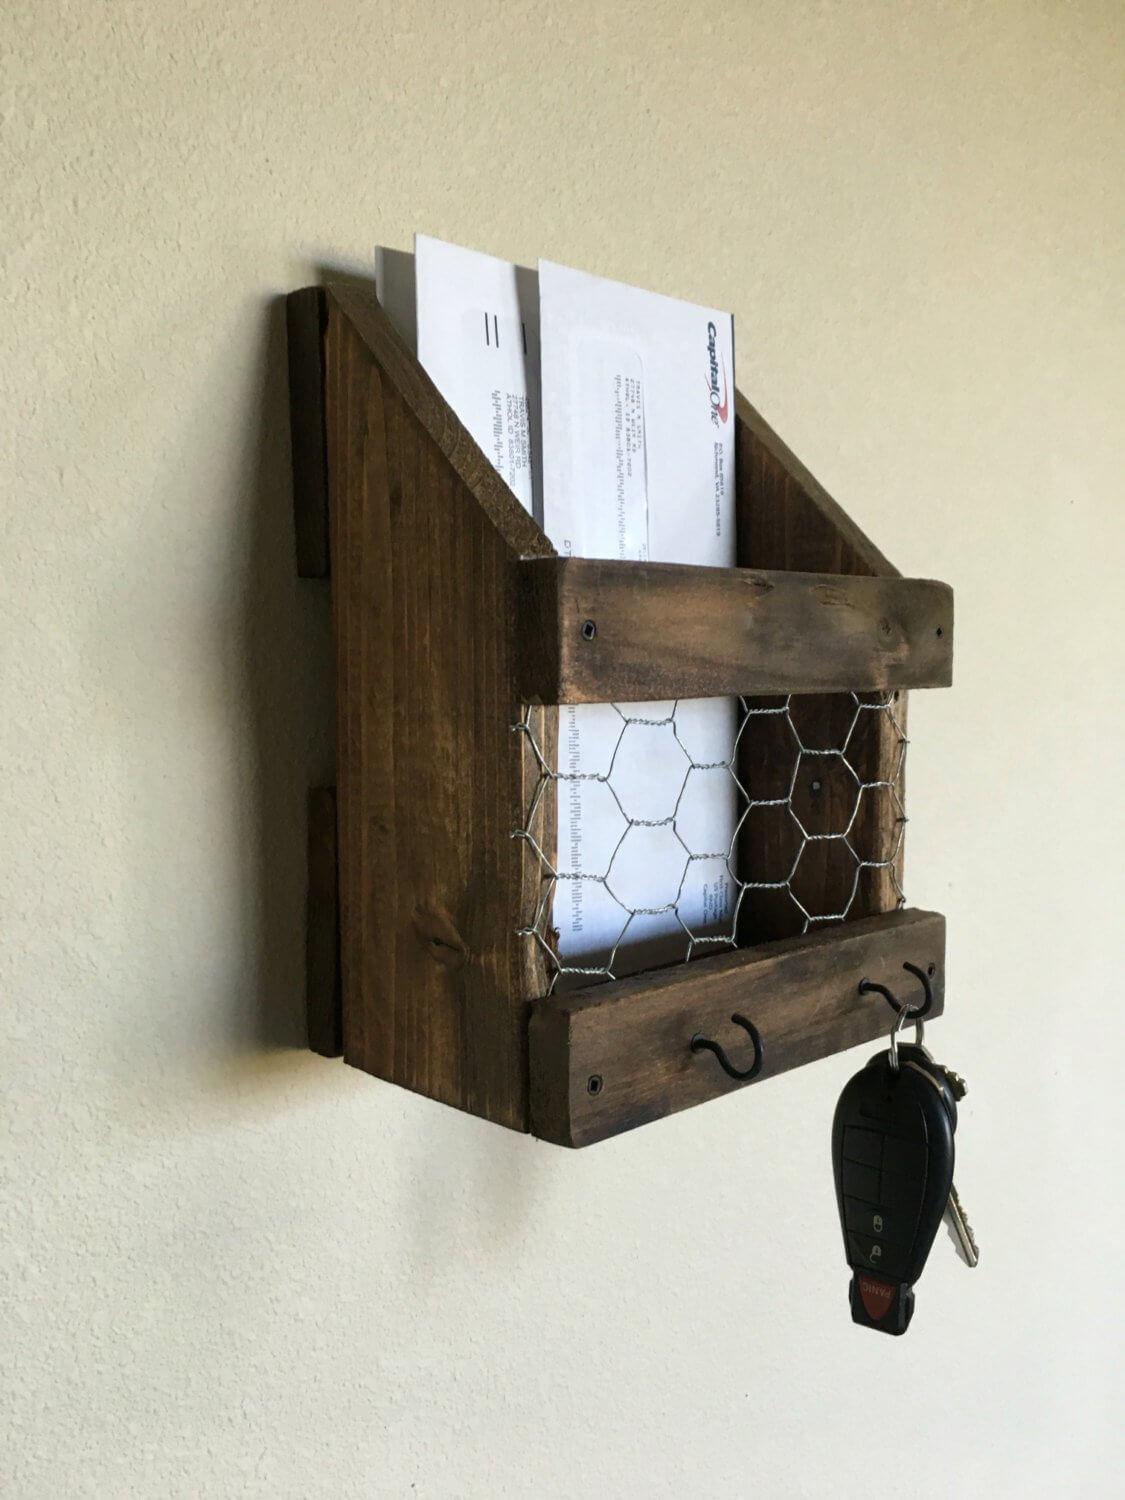 Reclaimed Wood Mail and Key Organization